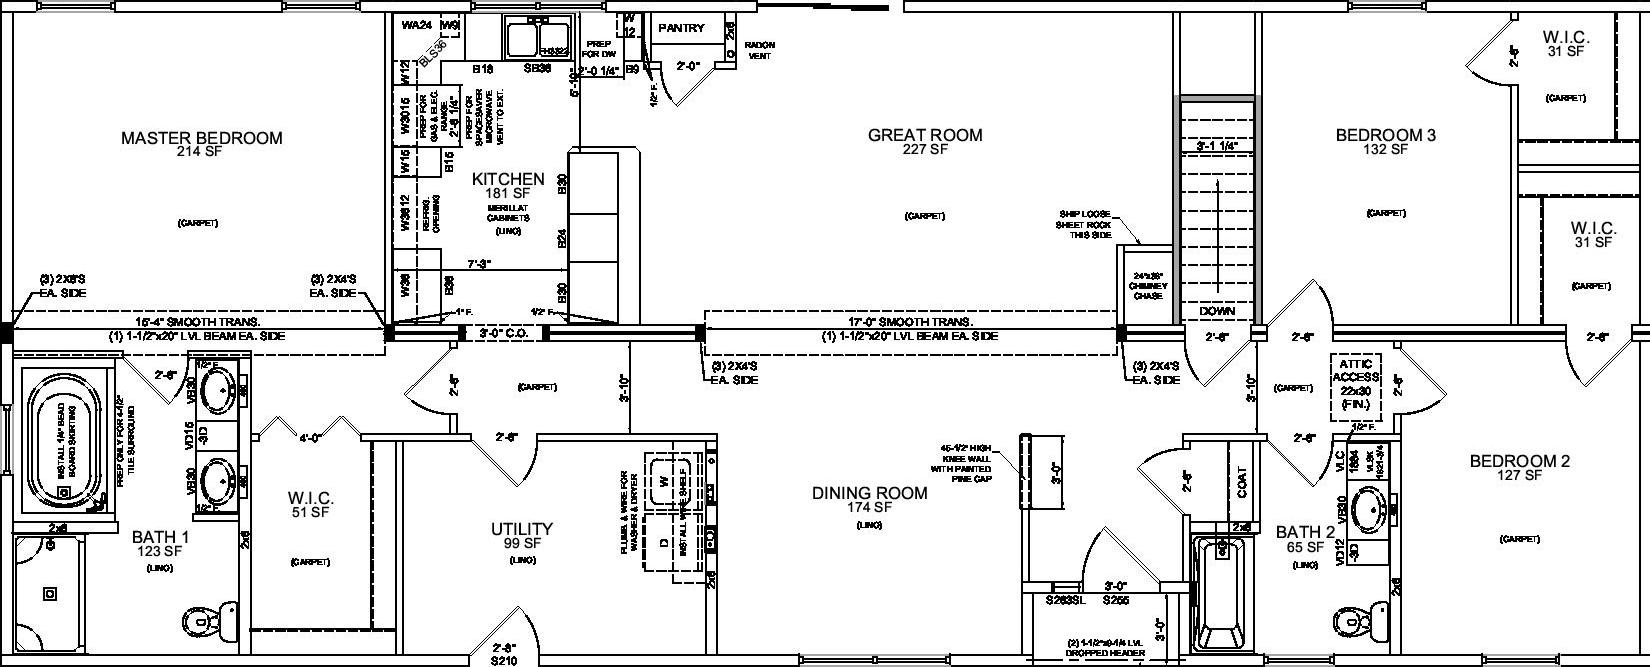 Ranch style modular home floor plans house design plans for Modular ranch house plans